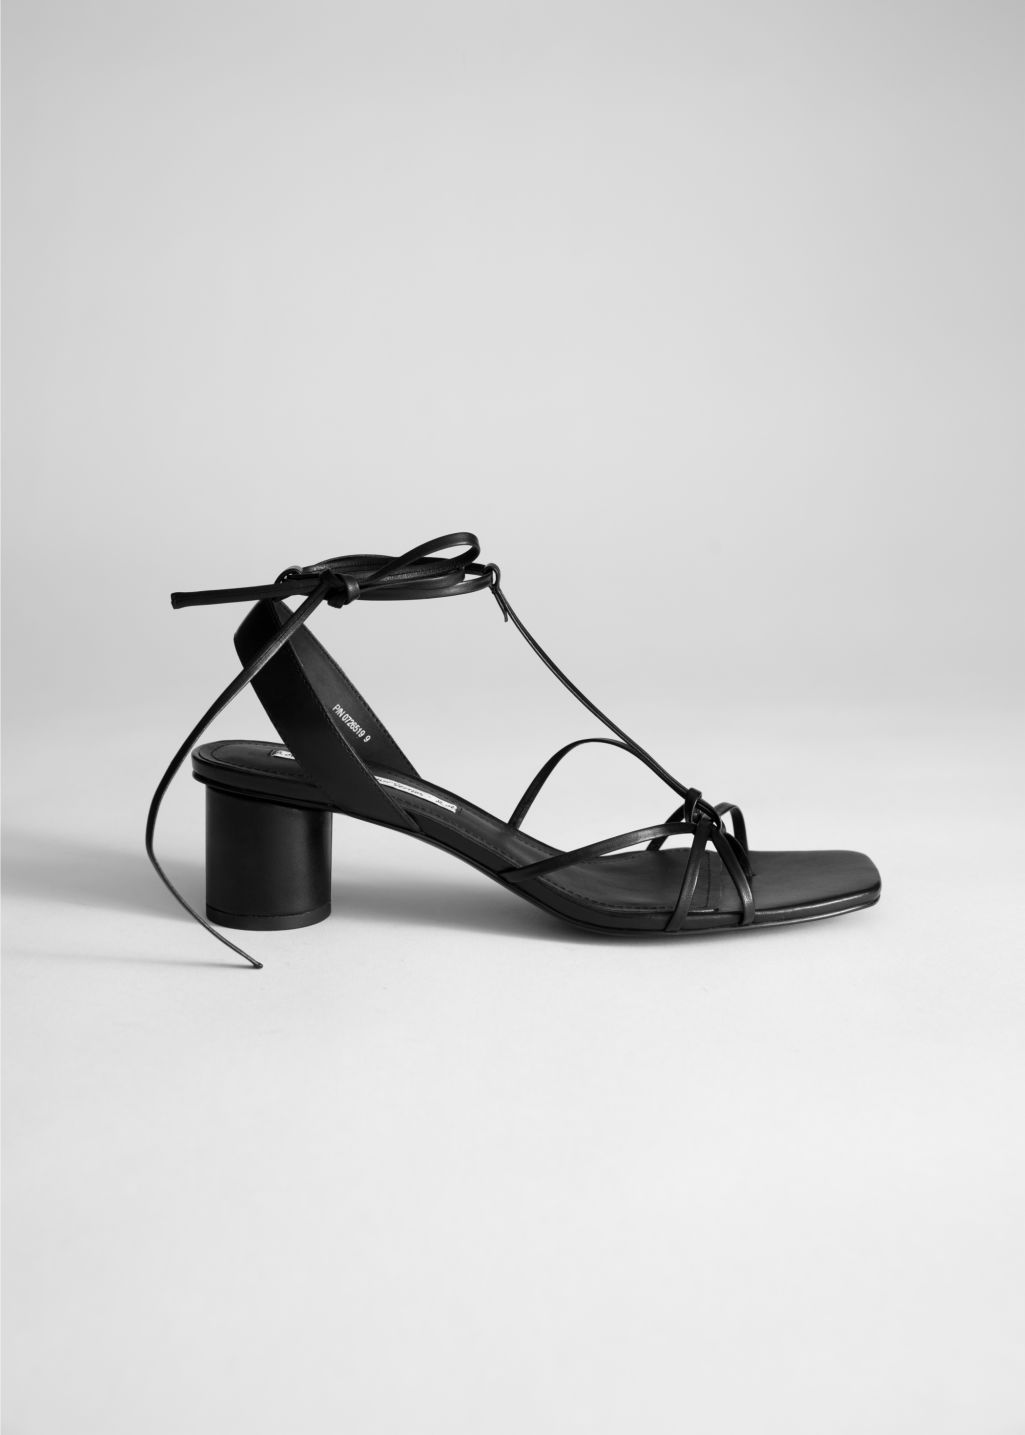 Square Toe Leather Strappy Heeled Sandals in 2019 | Strappy